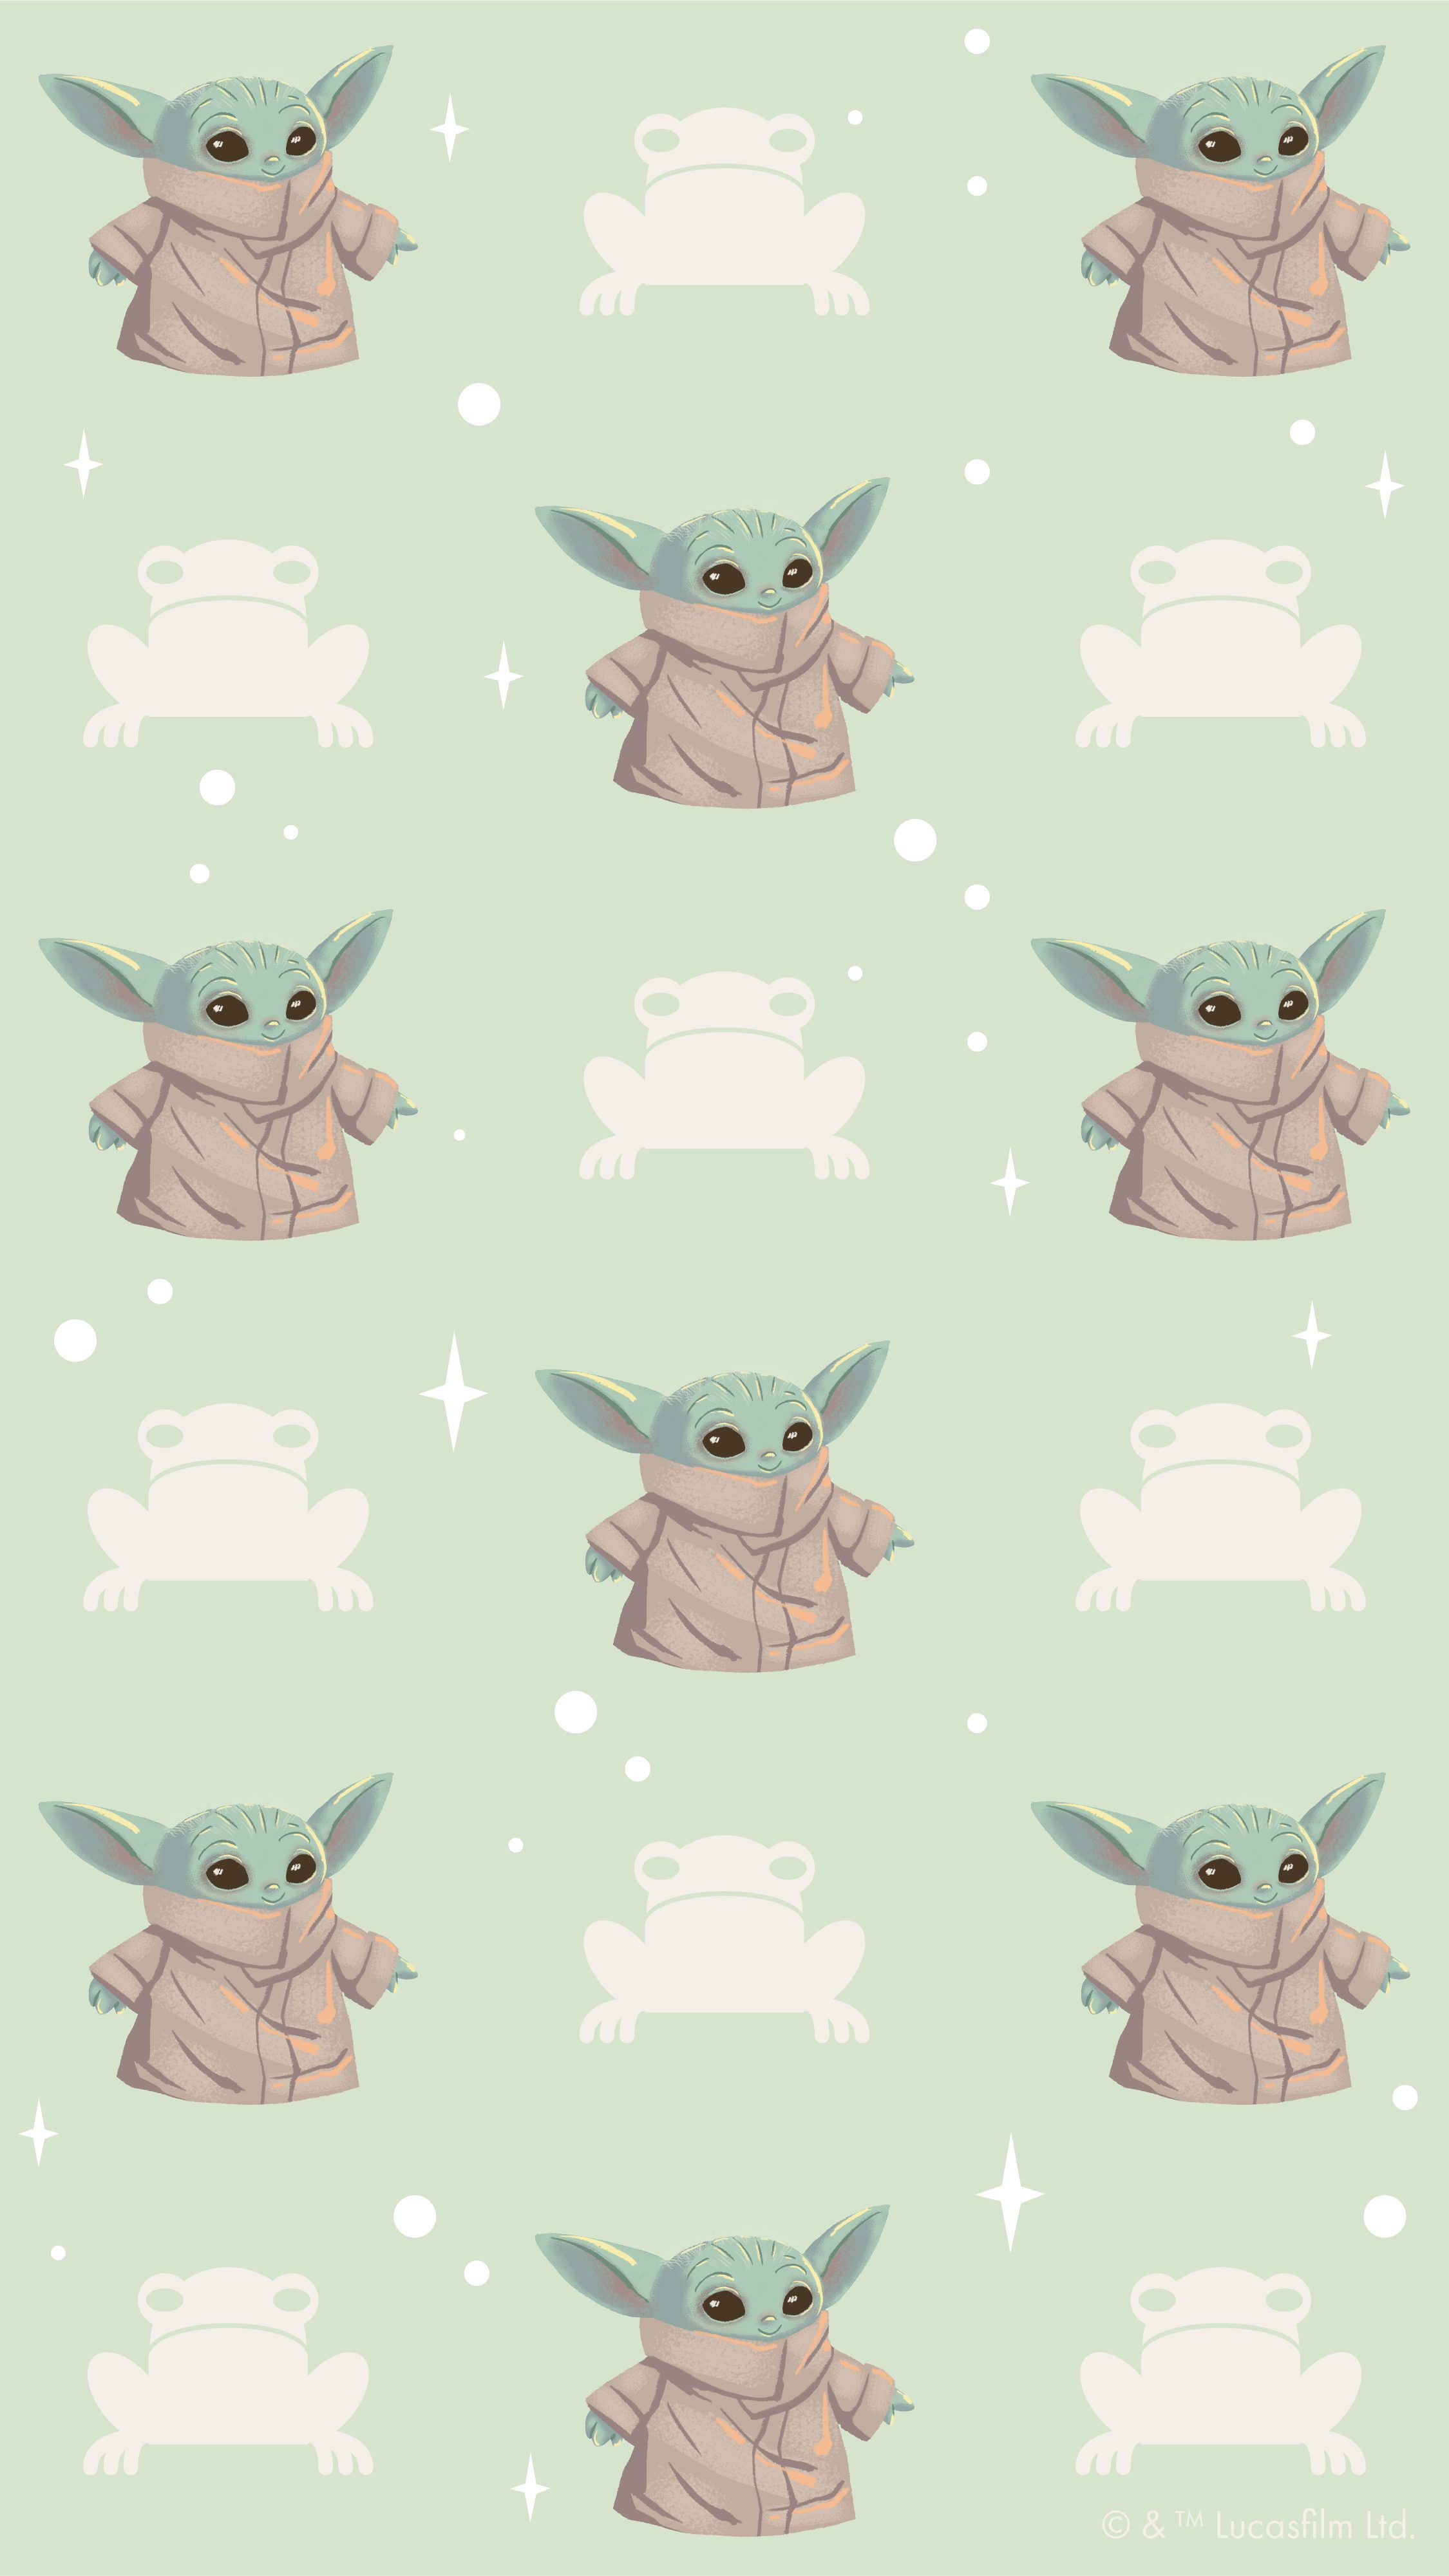 The Child X Colourpop Phone Wallpaper Yoda Wallpaper Cute Cartoon Wallpapers Star Wars Artwork